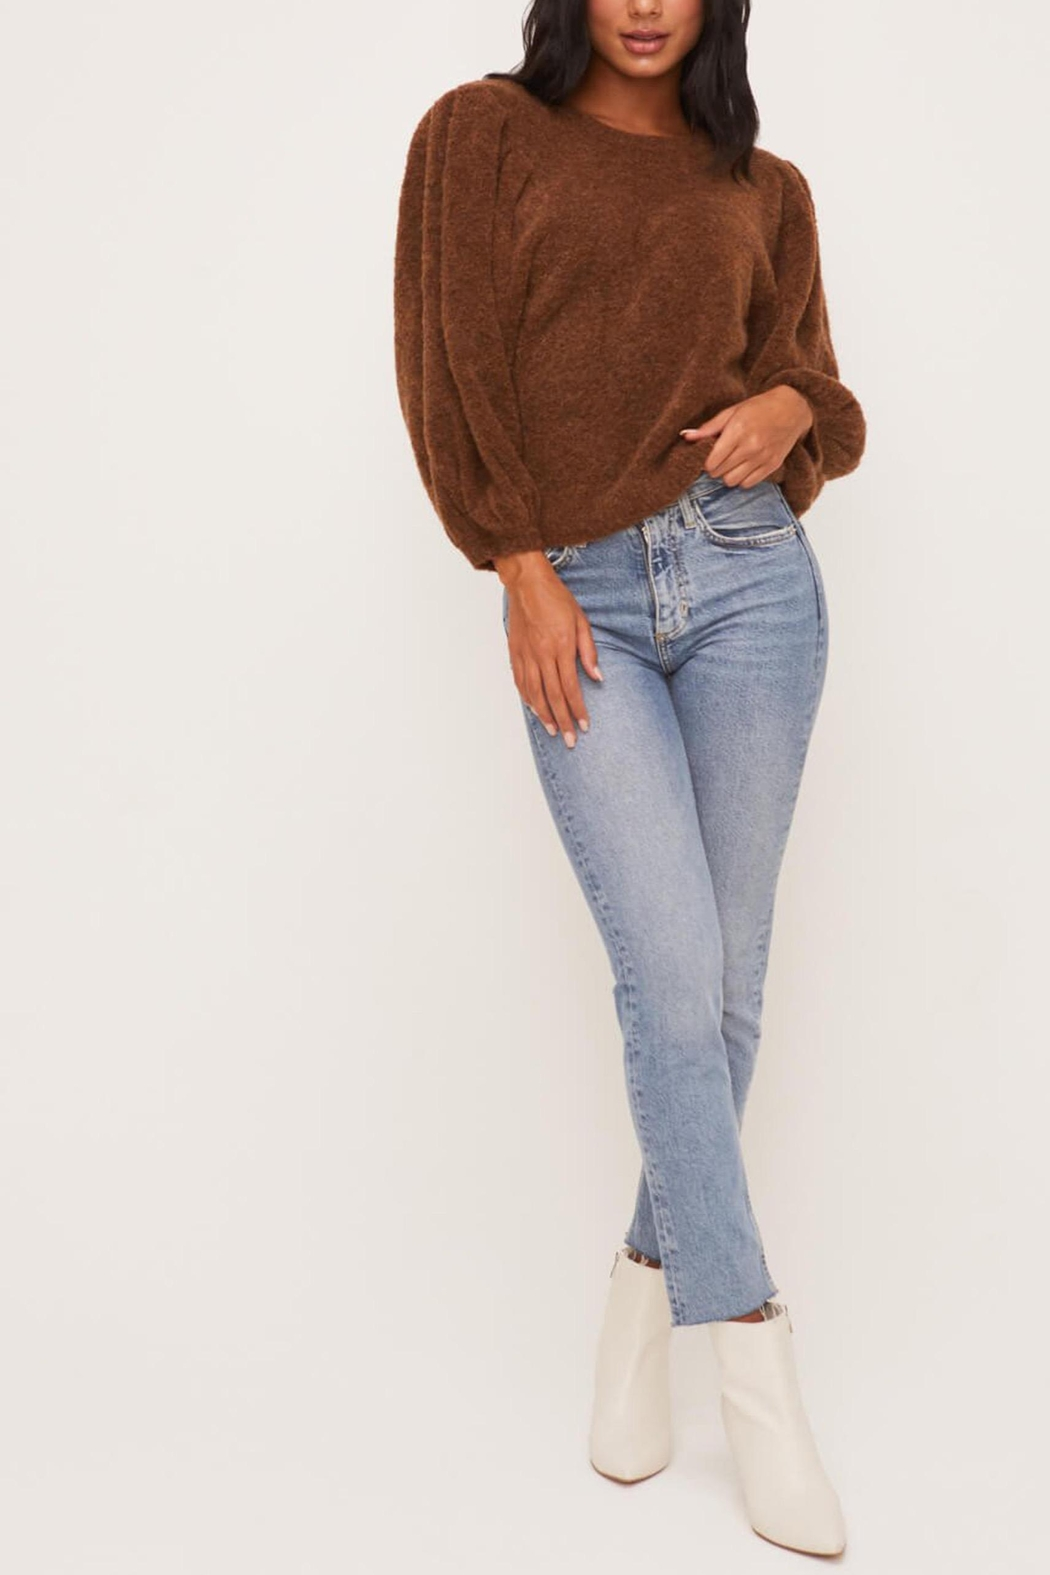 Lush Clothing  Brown Balloon-Sleeve Sweater - Front Full Image